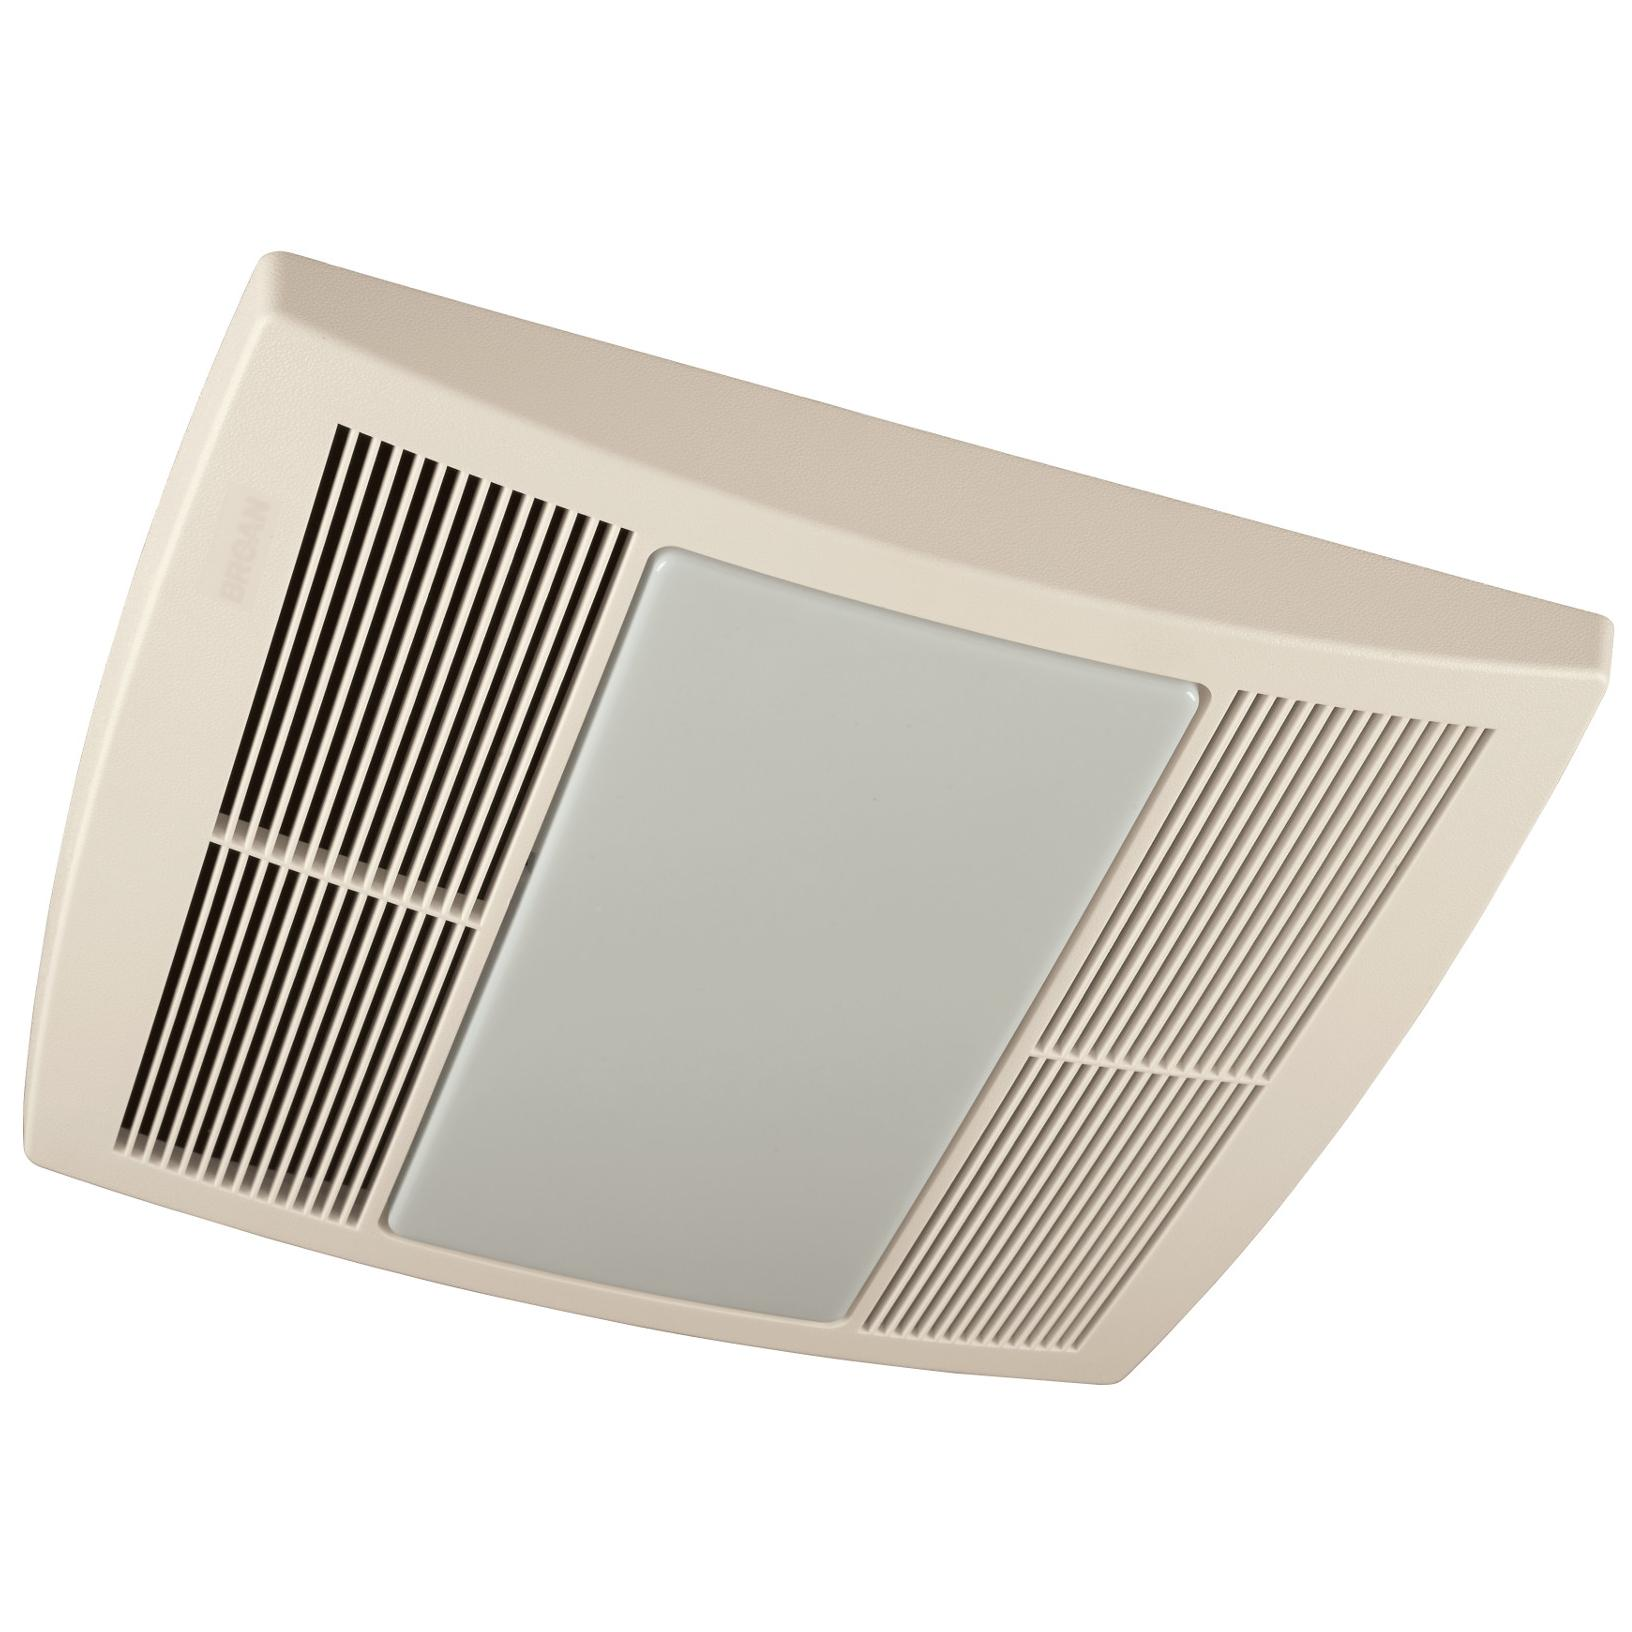 Broan QTR110L Ultra Silent Bath Fan, 110 CFM, White Grille